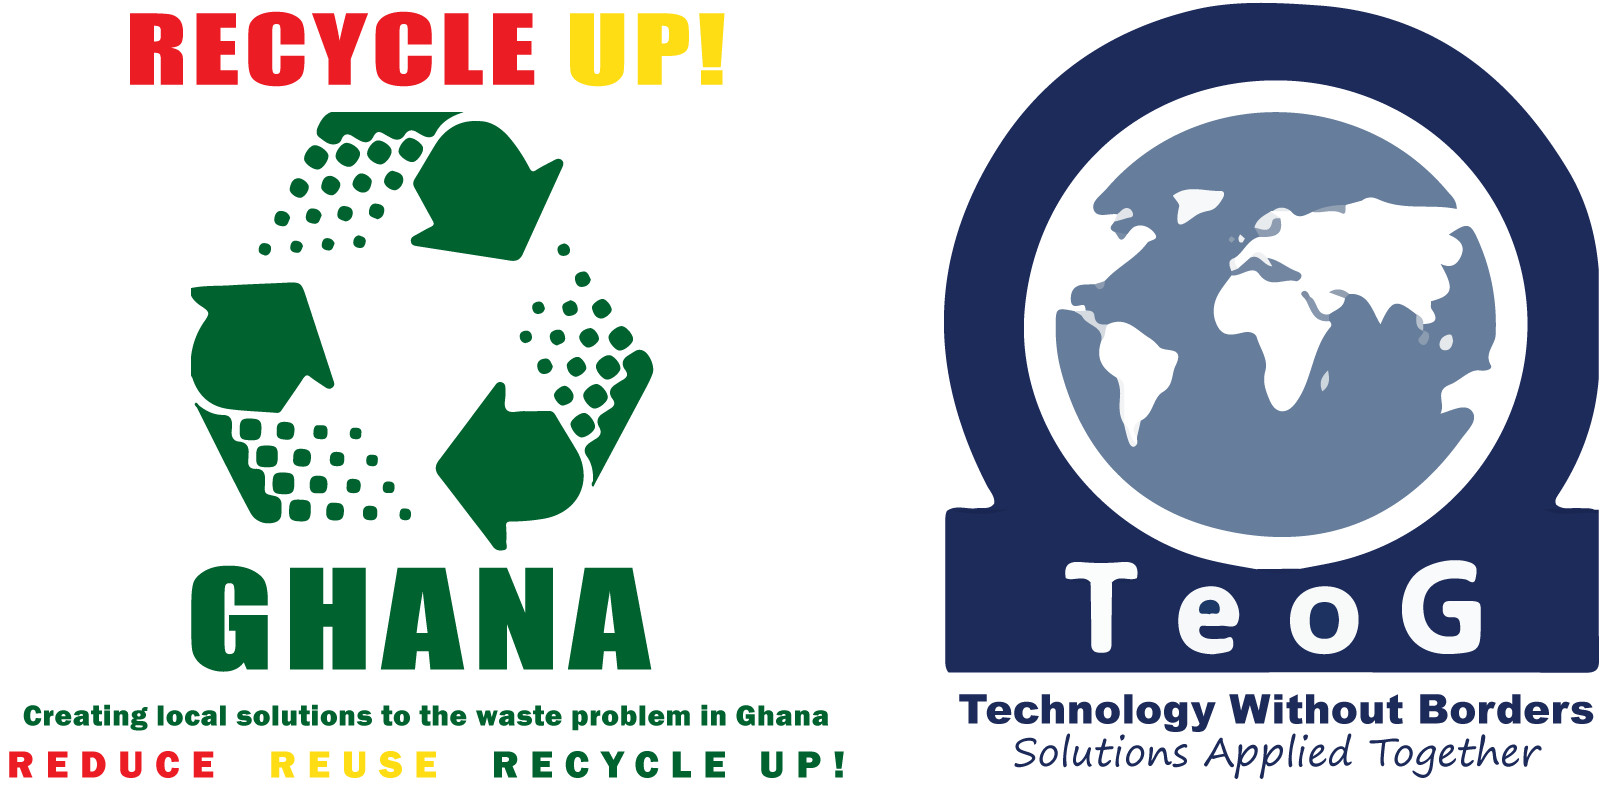 Recycle Up! Ghana